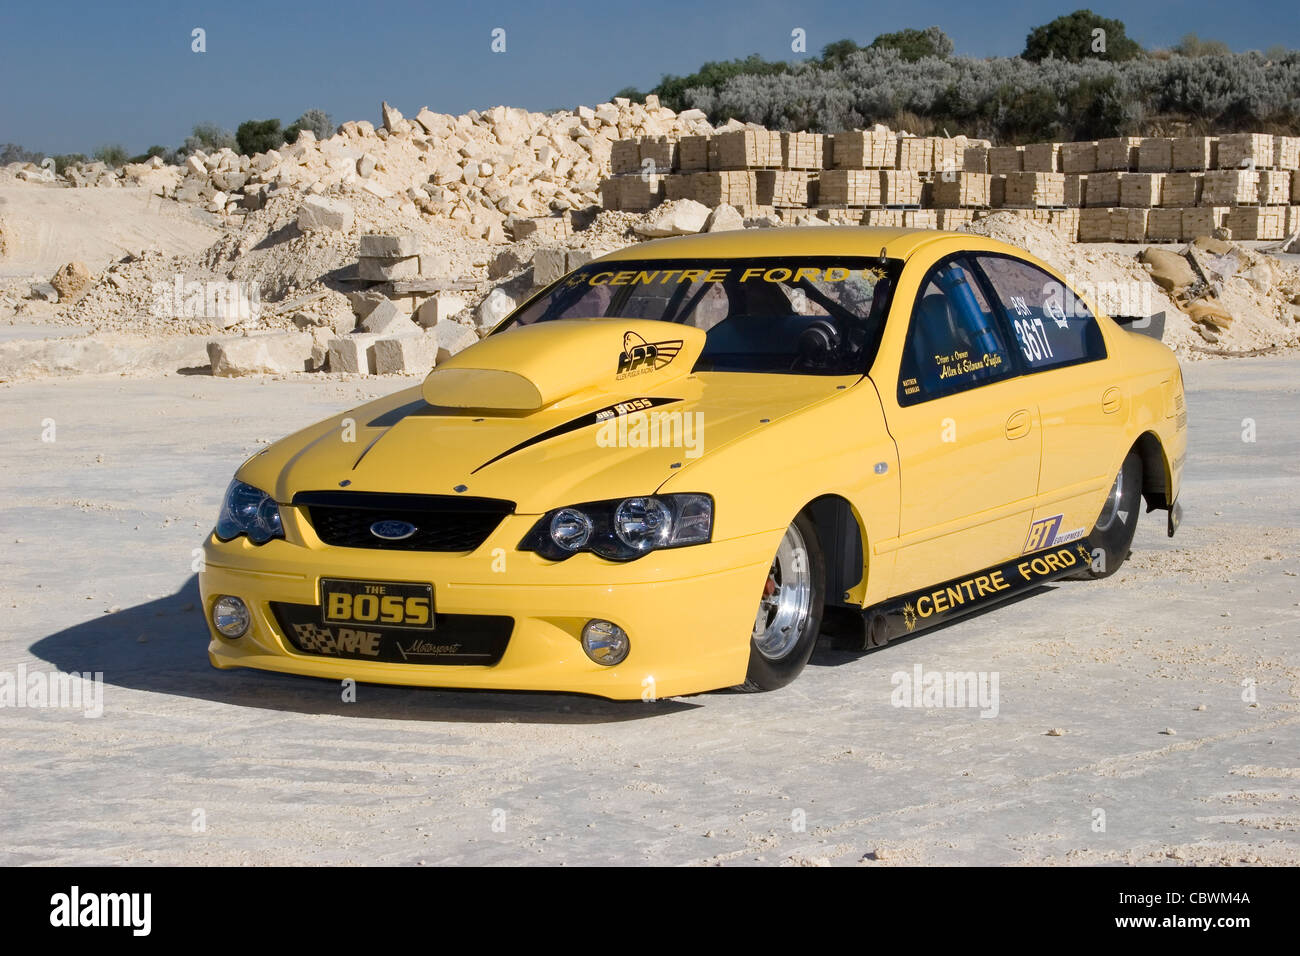 australian ford falcon drag racing car stock photo. Black Bedroom Furniture Sets. Home Design Ideas